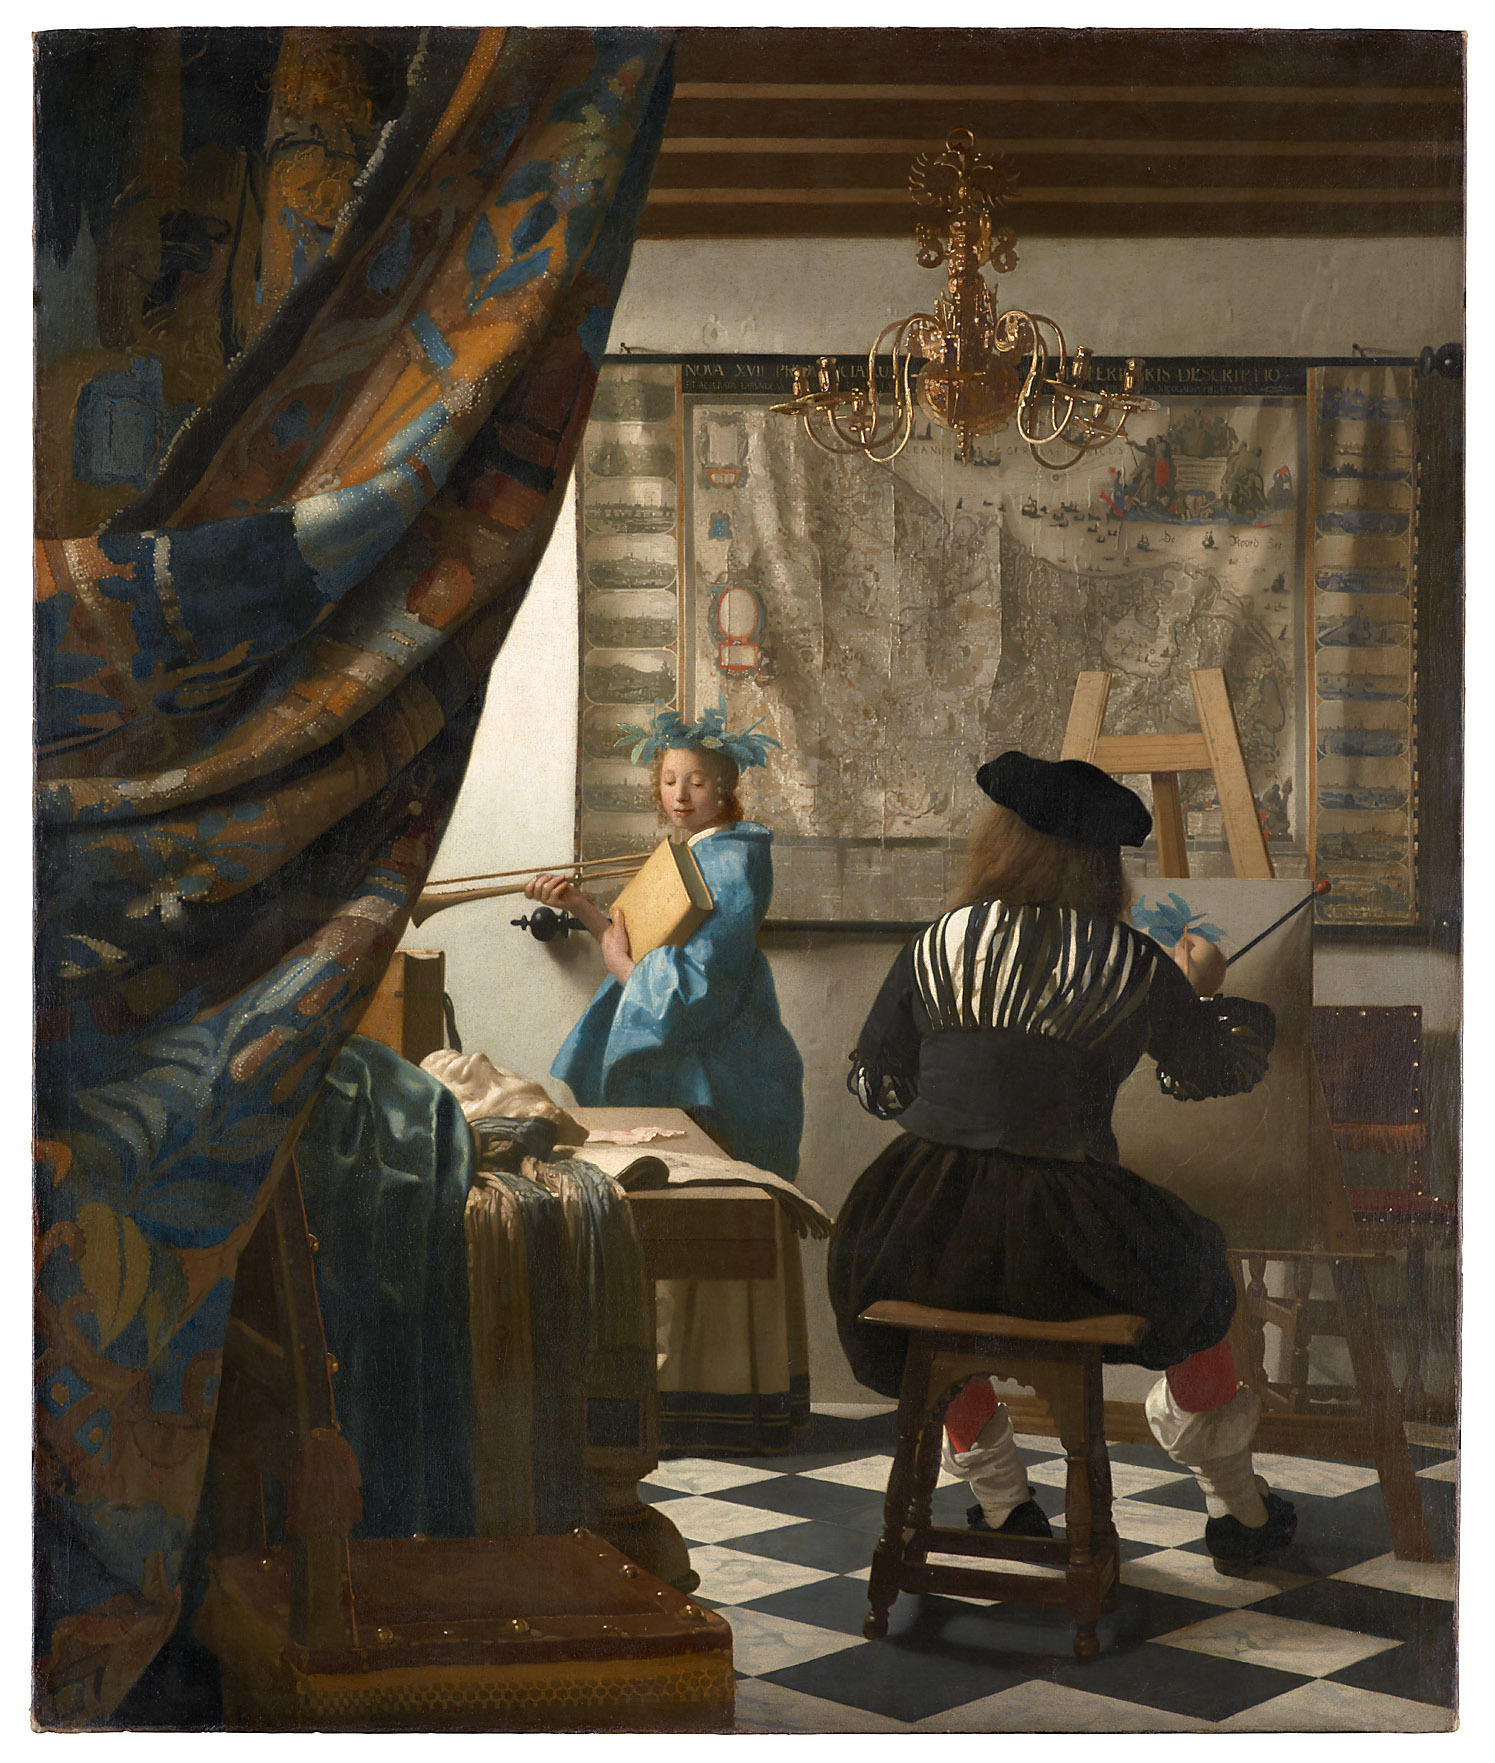 https://upload.wikimedia.org/wikipedia/commons/2/2d/Jan_Vermeer_van_Delft_011.jpg